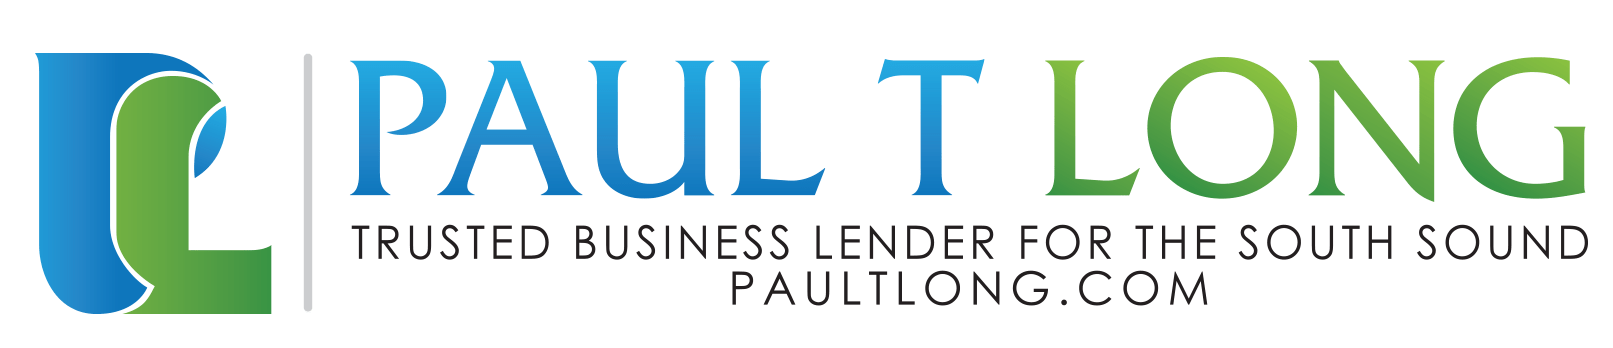 Your resource for Business Loans for the South Sound